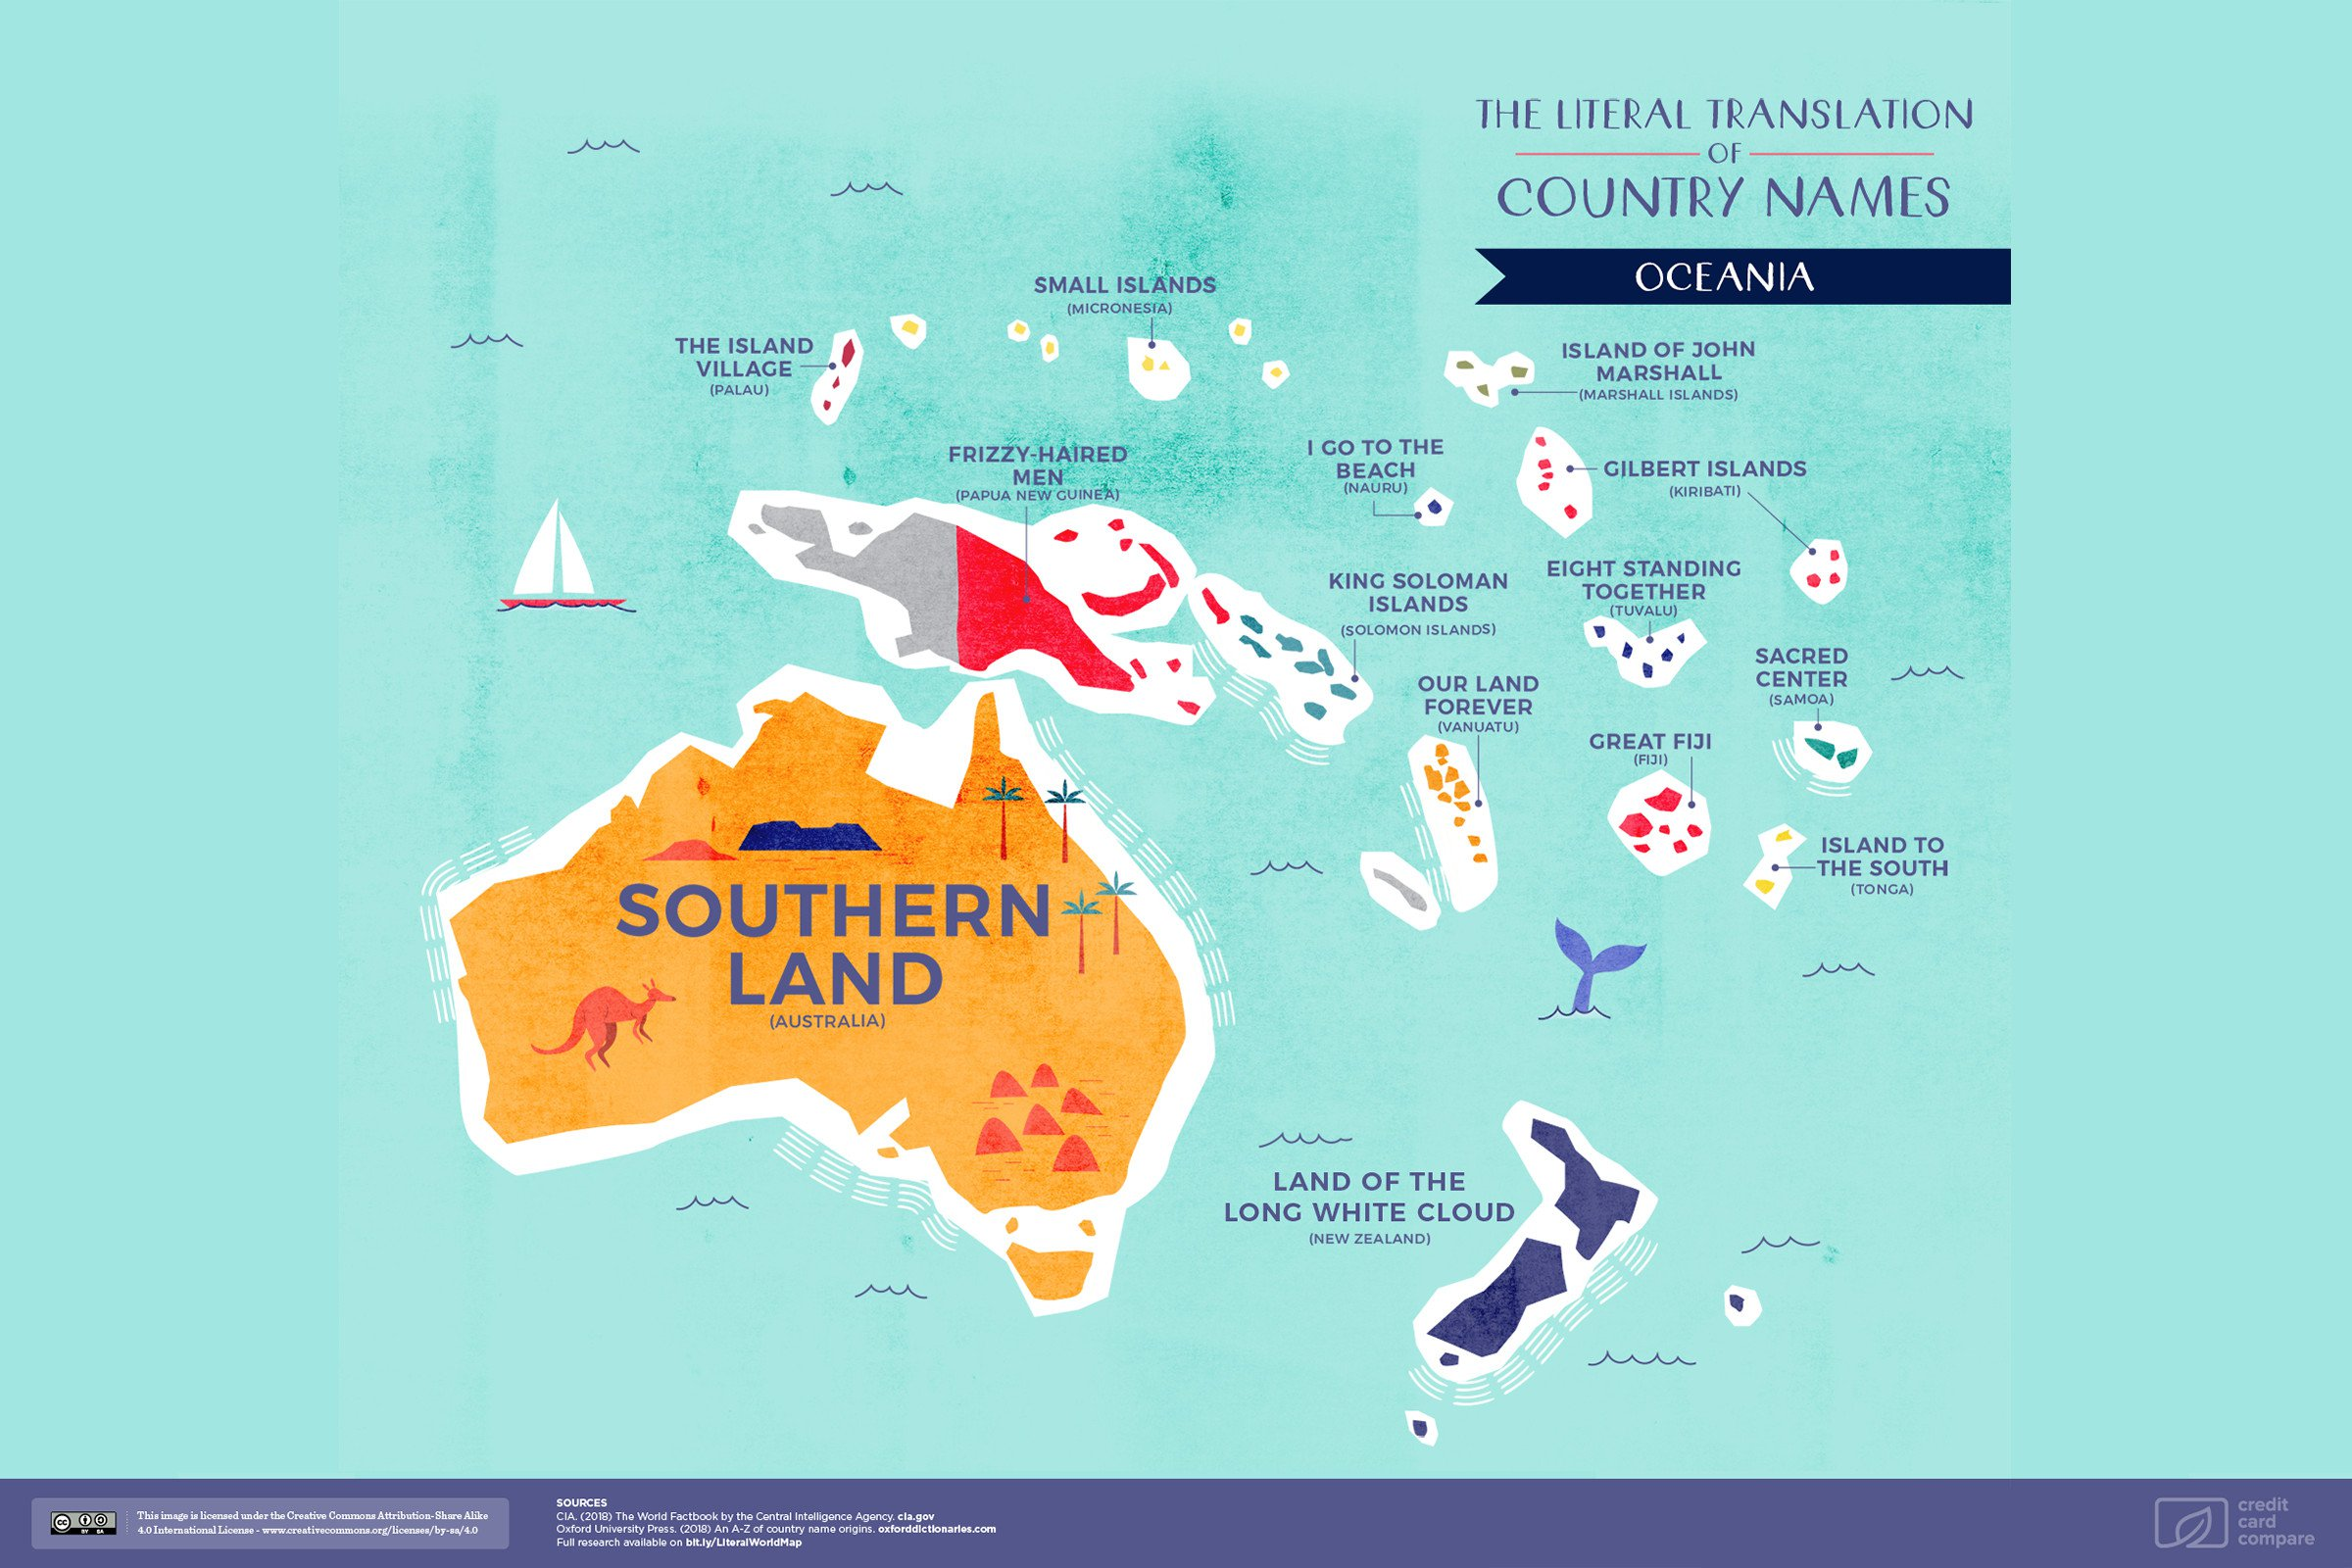 07_Literal-Translation-Of-Country-Names_Oceania.original